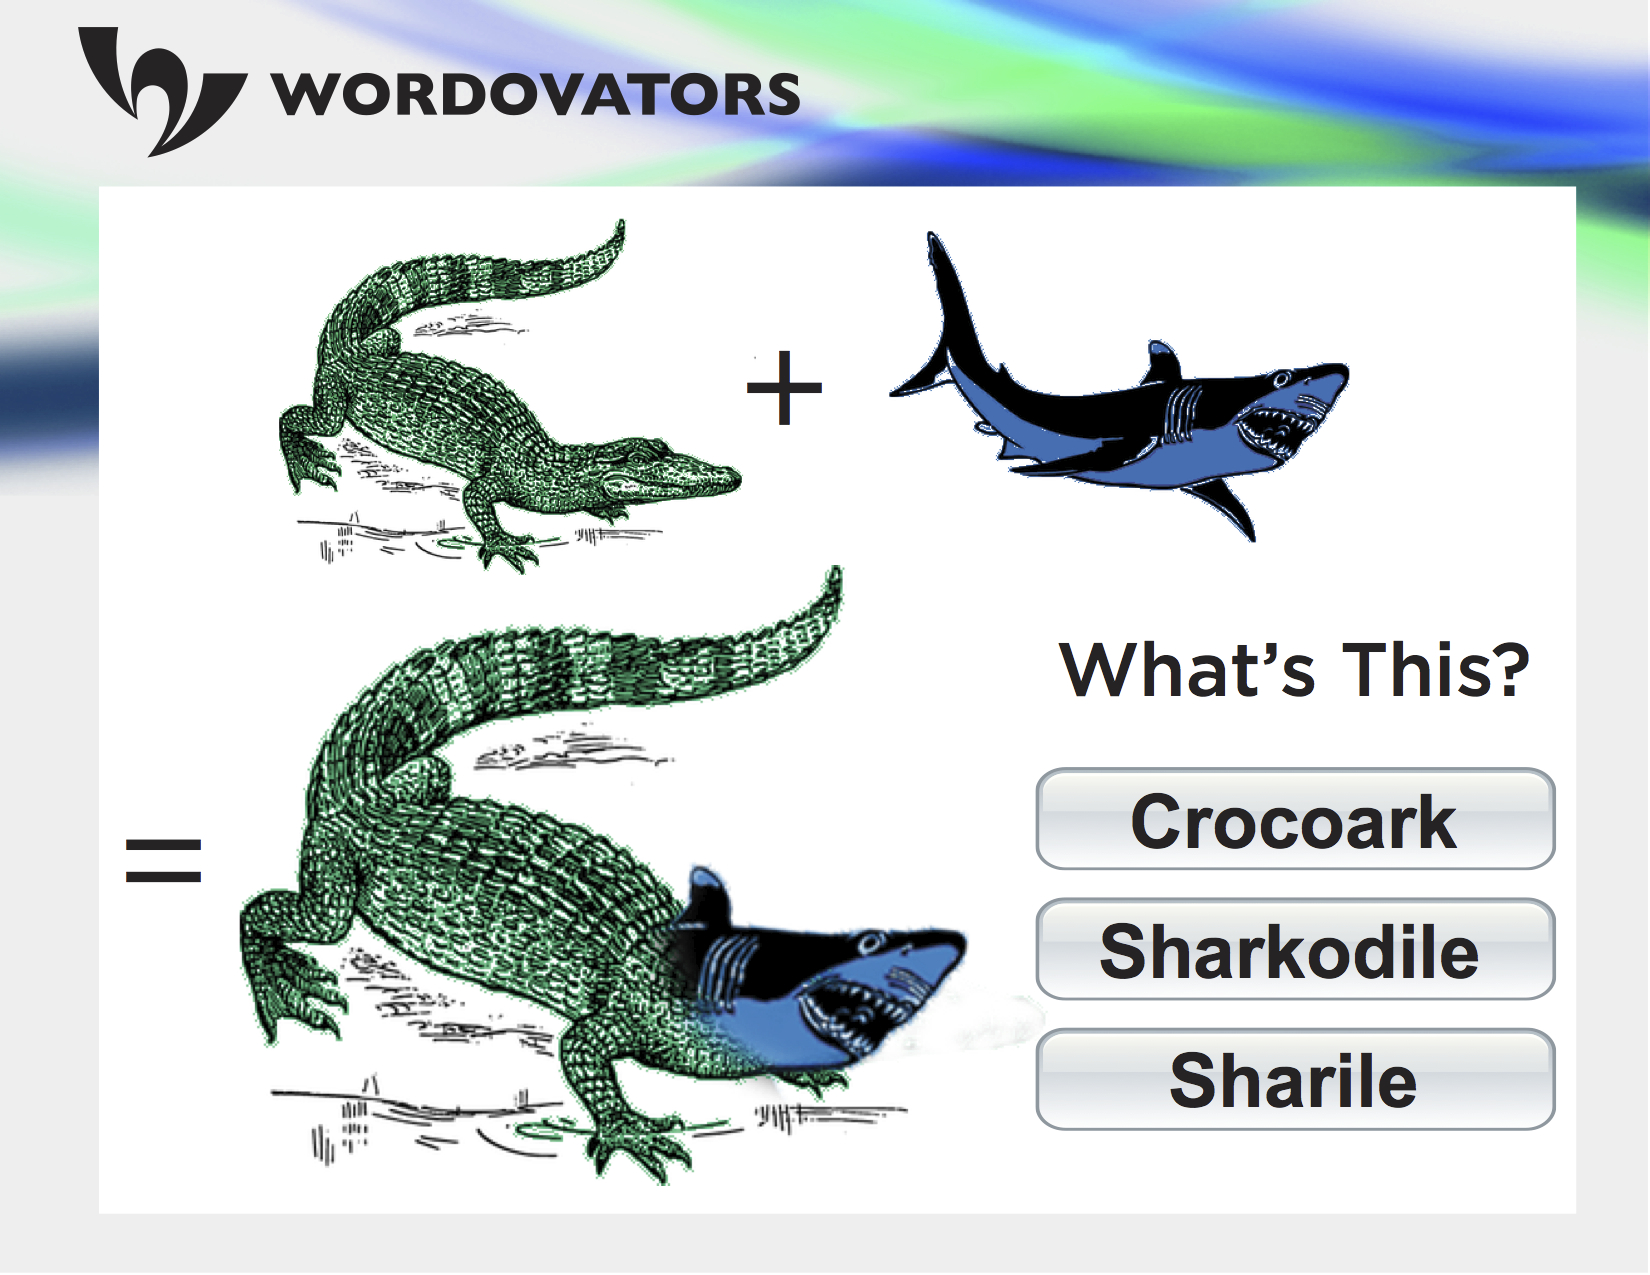 Wordovators: crocoark, sharkodile, sharile